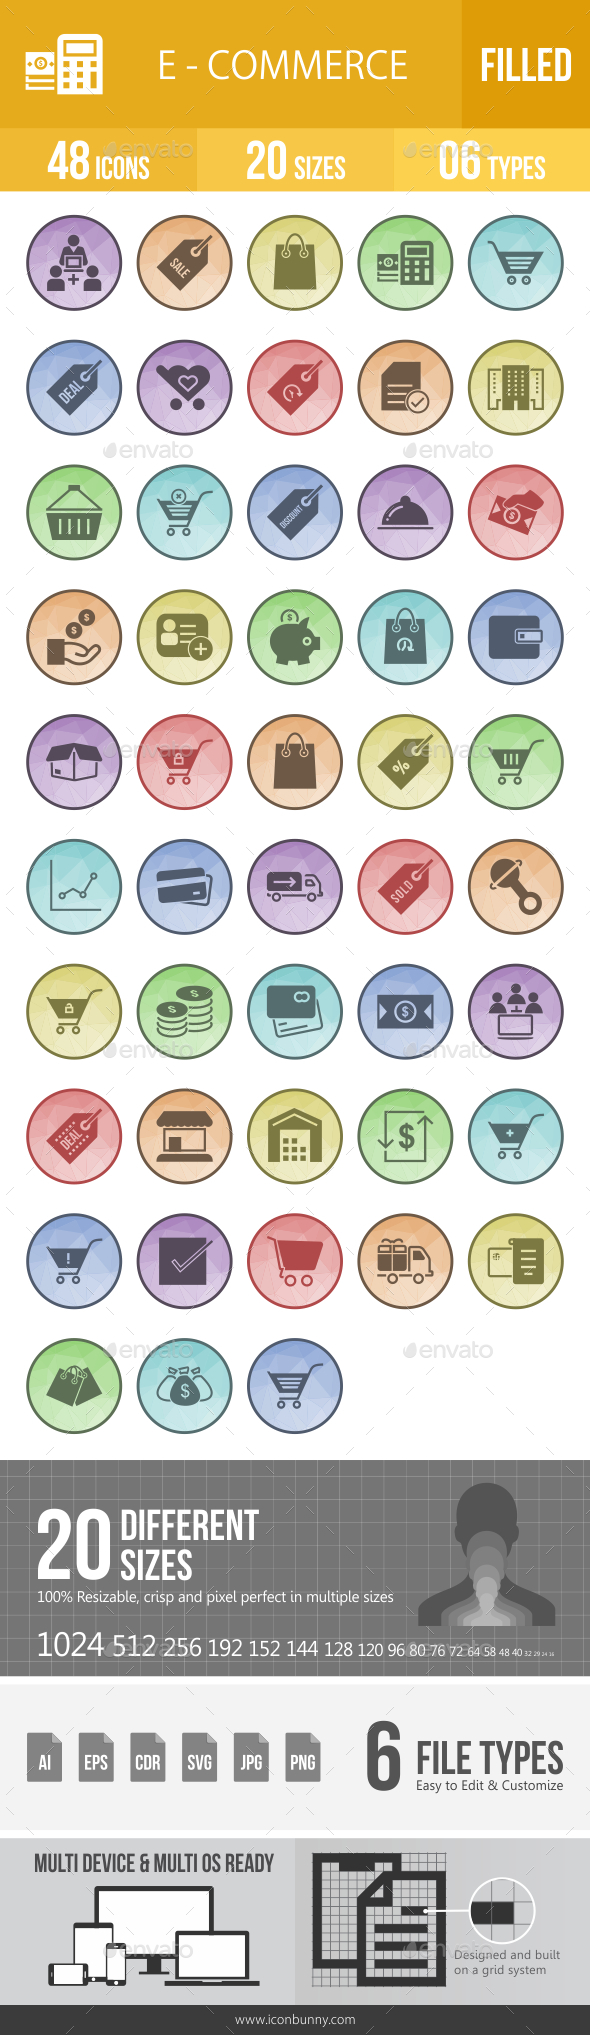 Ecommerce Filled Low Poly B/G Icons - Icons